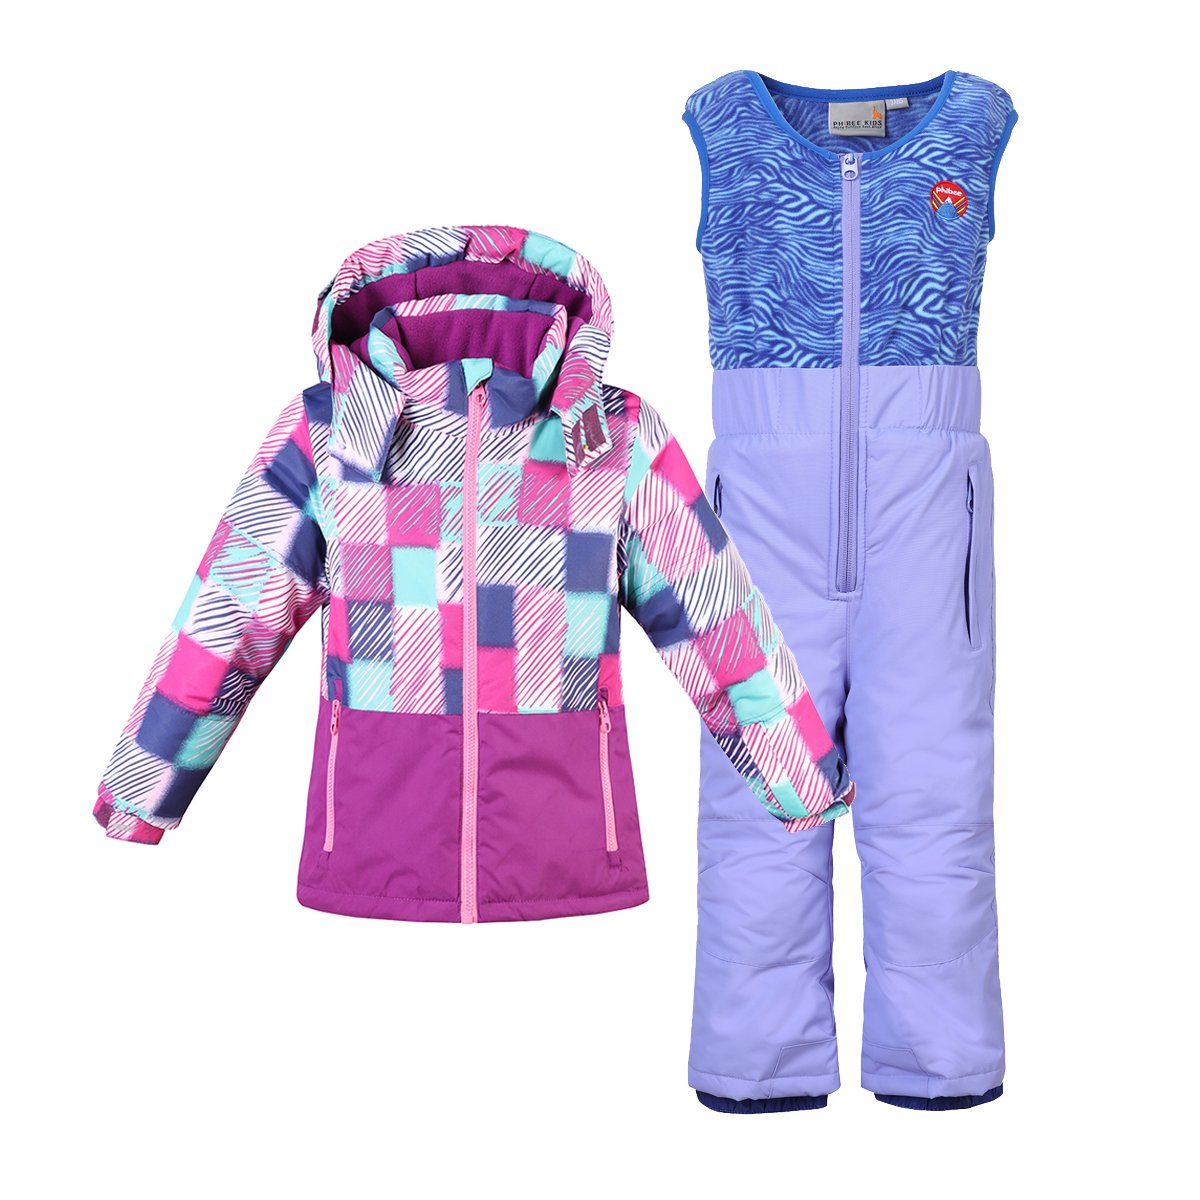 Phibee Little Girls' 2-Piece Winter Waterproof Snow Bibs and Ski Jacket Warm Snowsuit